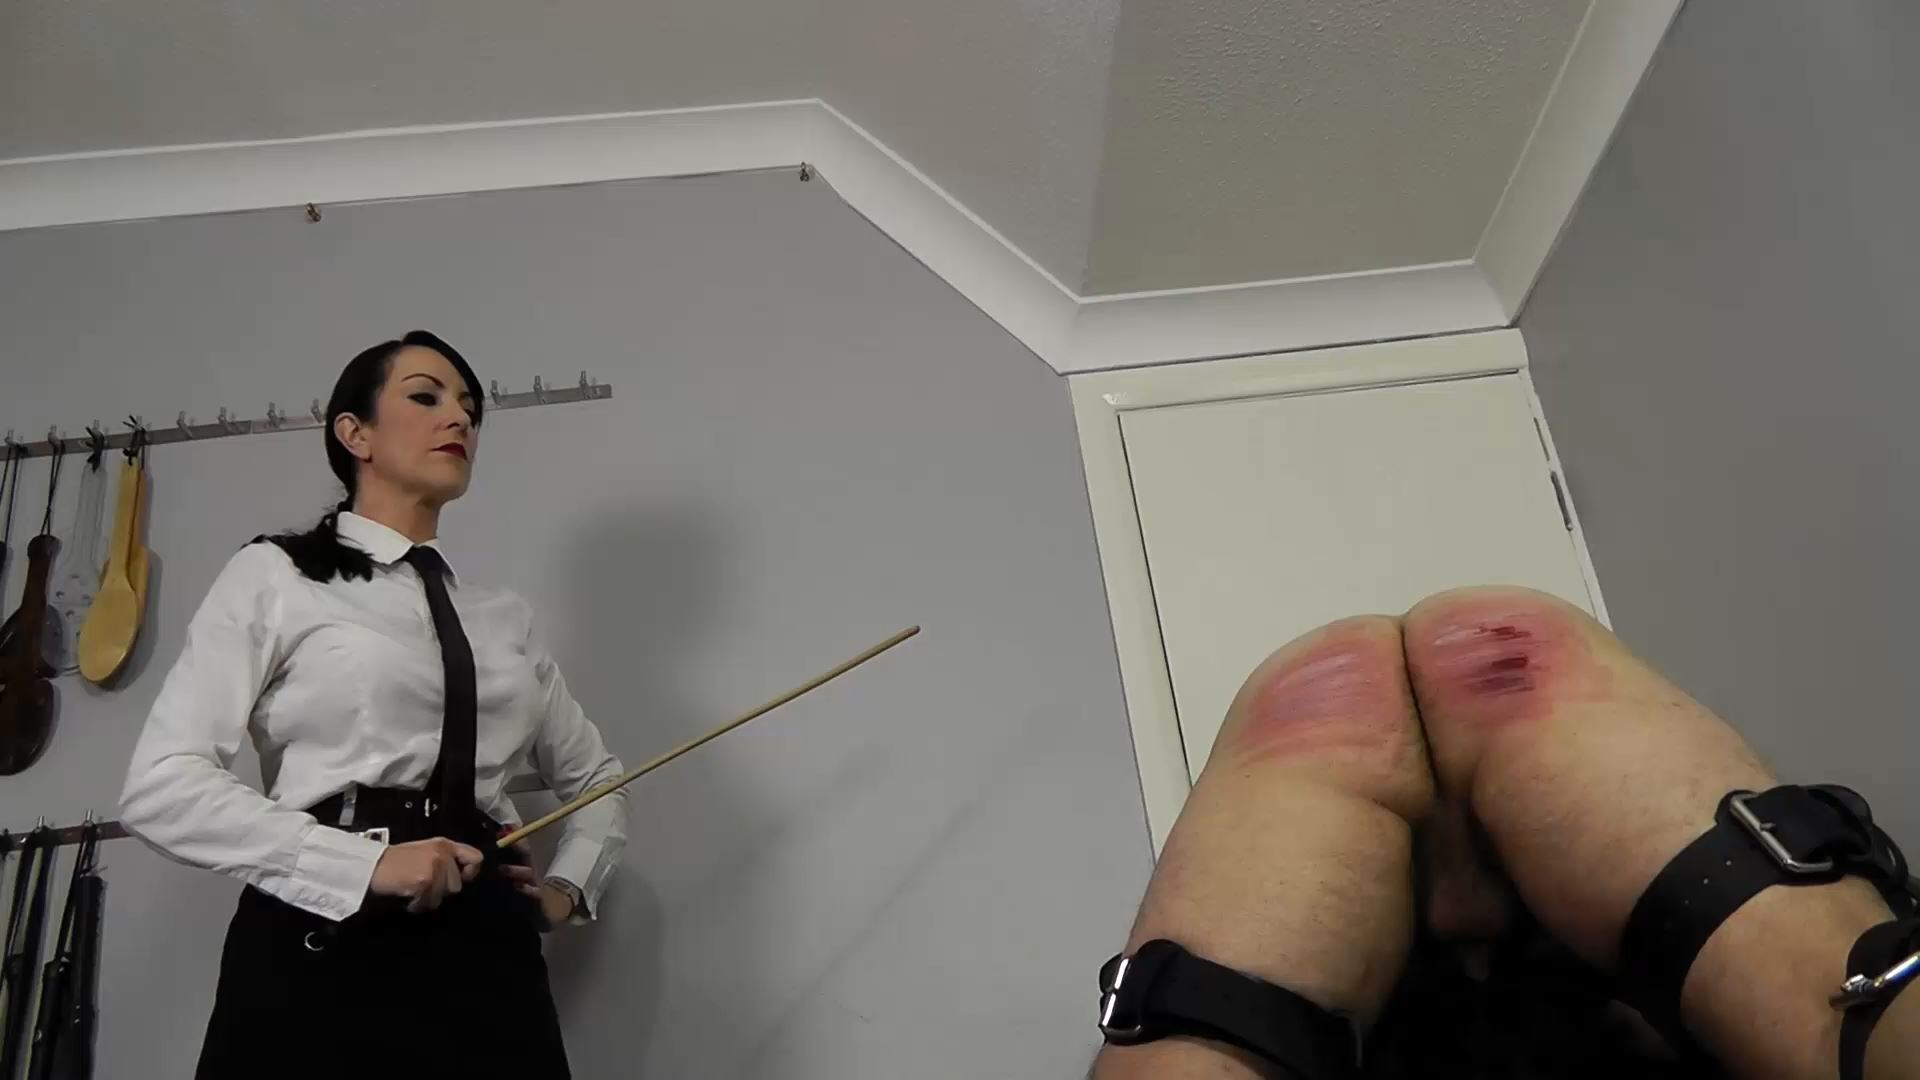 Jessica Wood In Scene: Contraband punishment - MISSJESSICAWOODVIDEOS - FULL HD/1080p/MP4